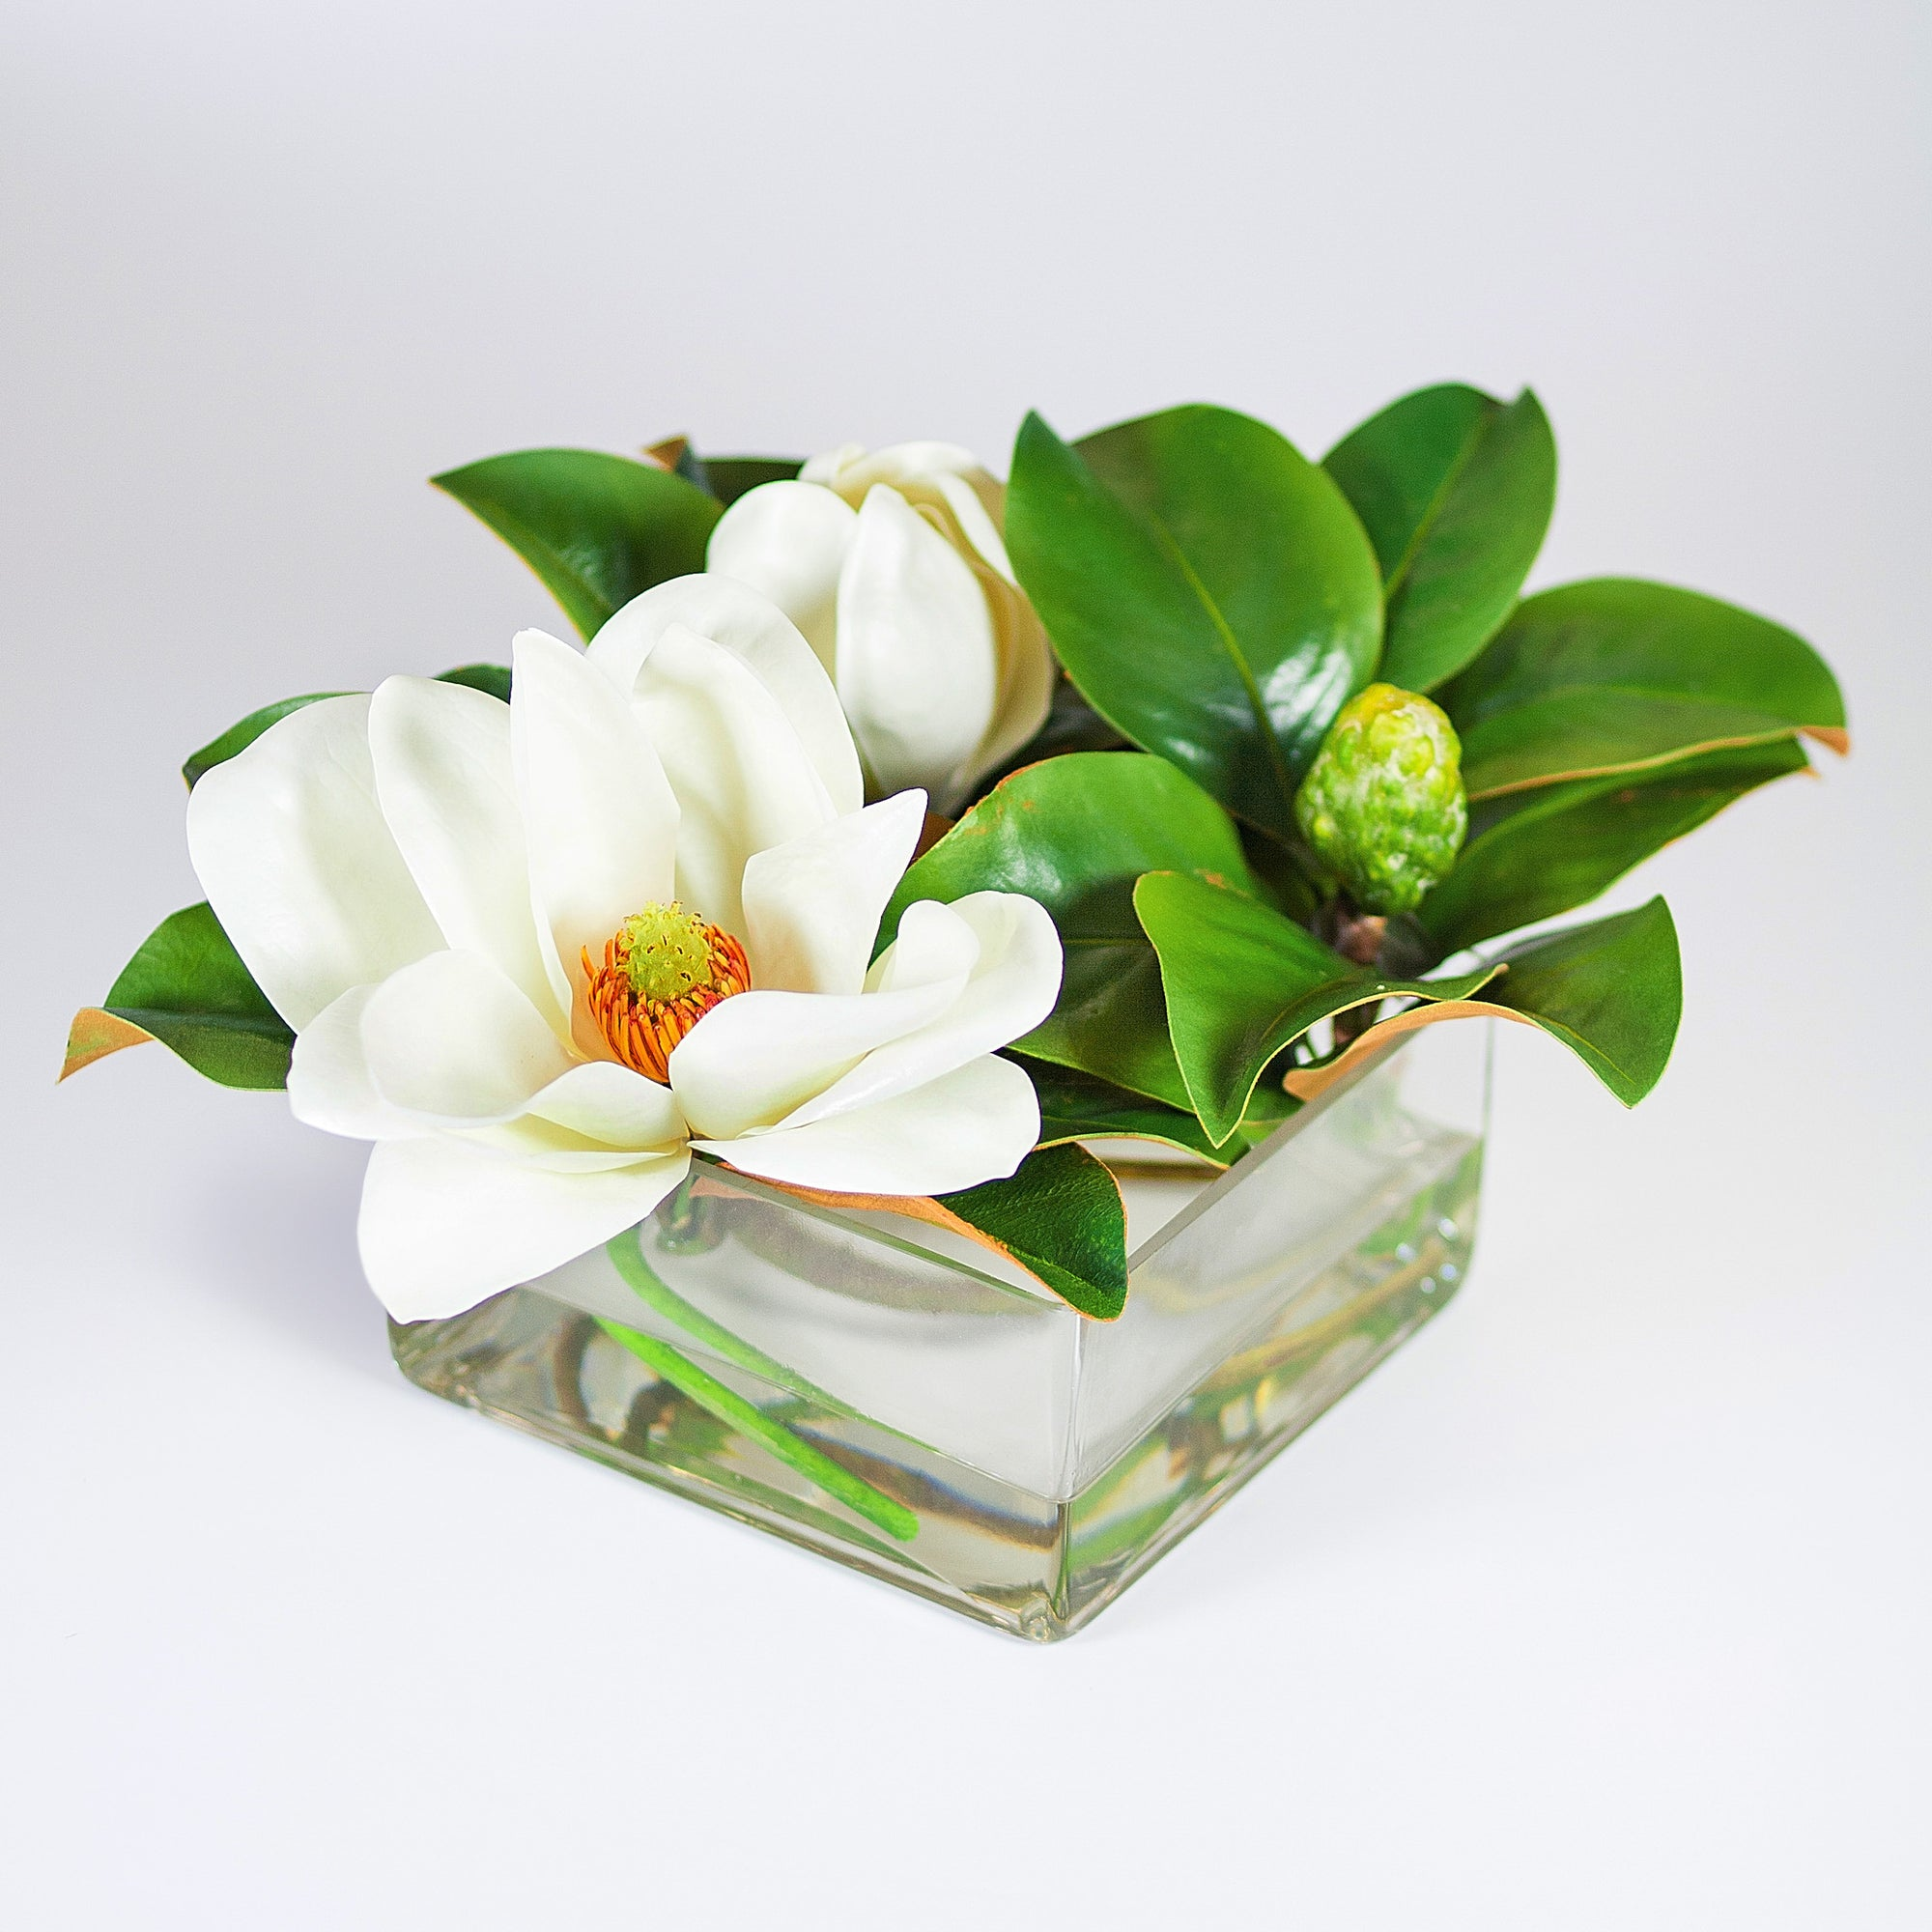 MAGNOLIAS IN VASE 13'' (WHI012-WH) - Winward Home faux floral arrangements